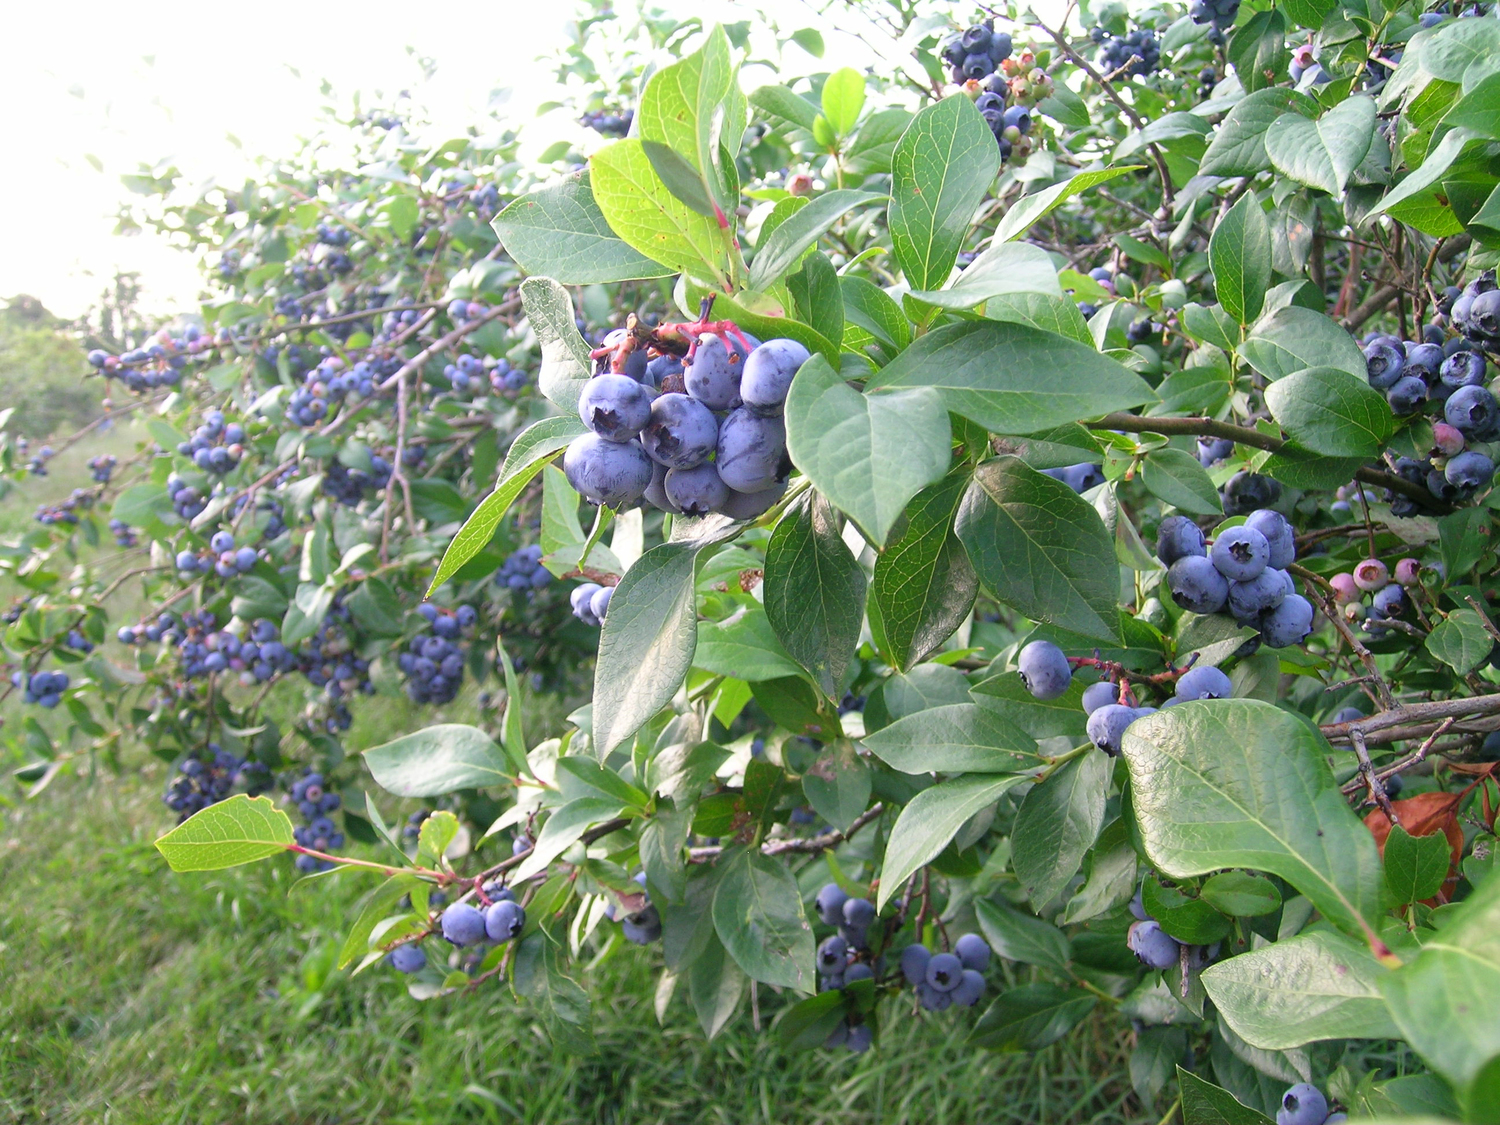 Berries clipart berry bush. Treworgy family orchards a